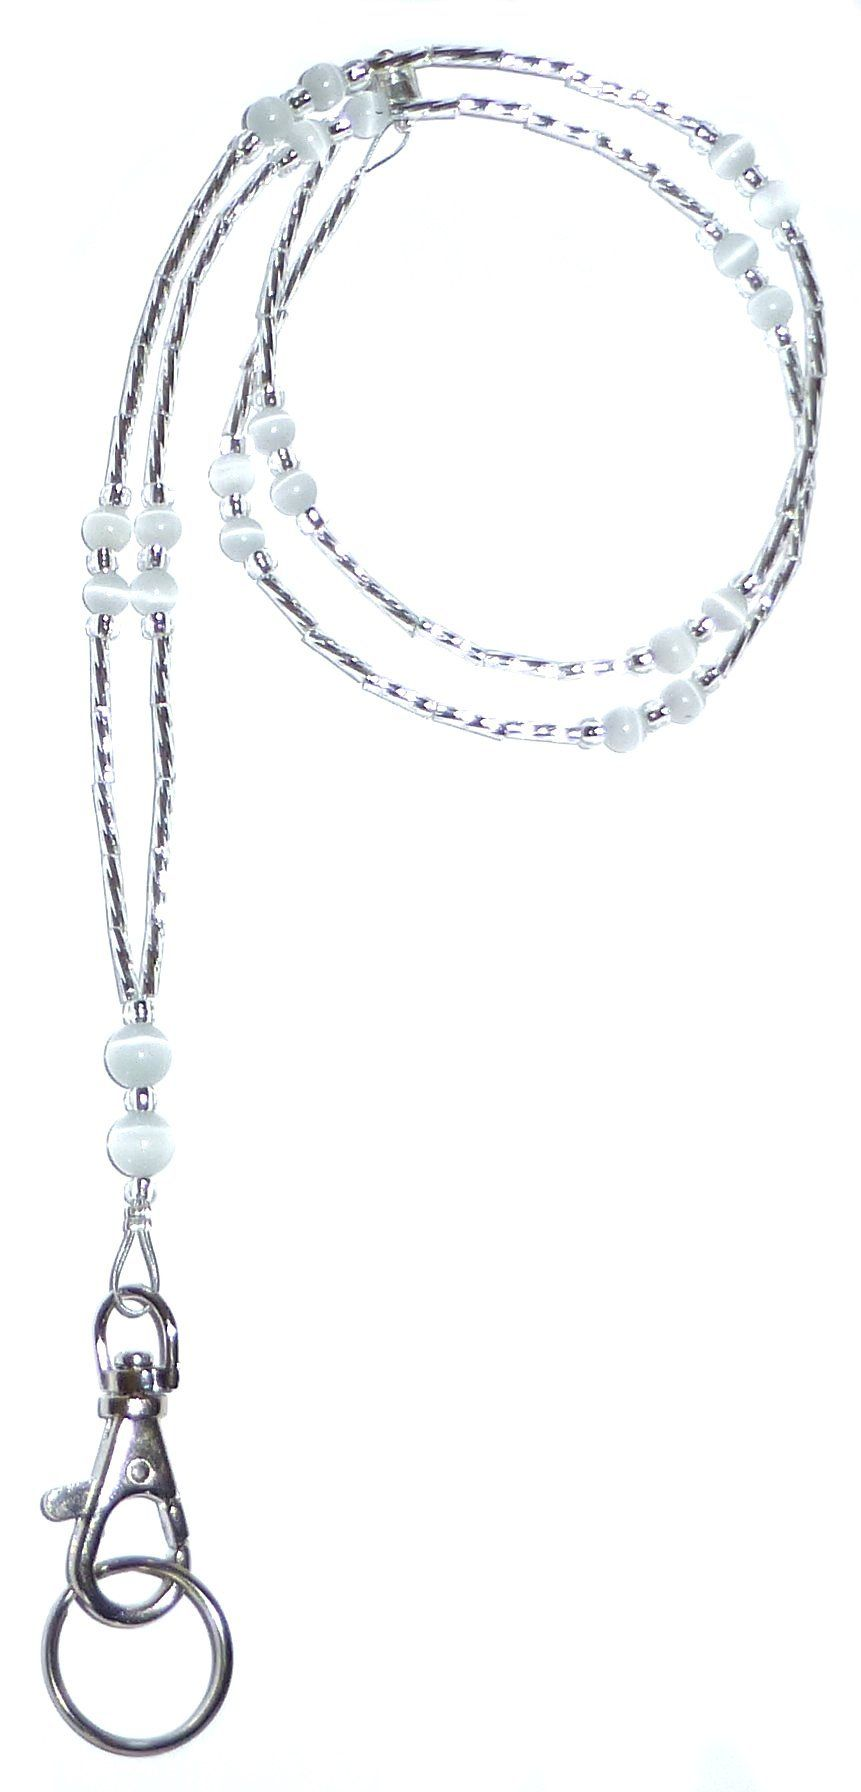 Gift idea for nurses - Women's Fashion Lanyard